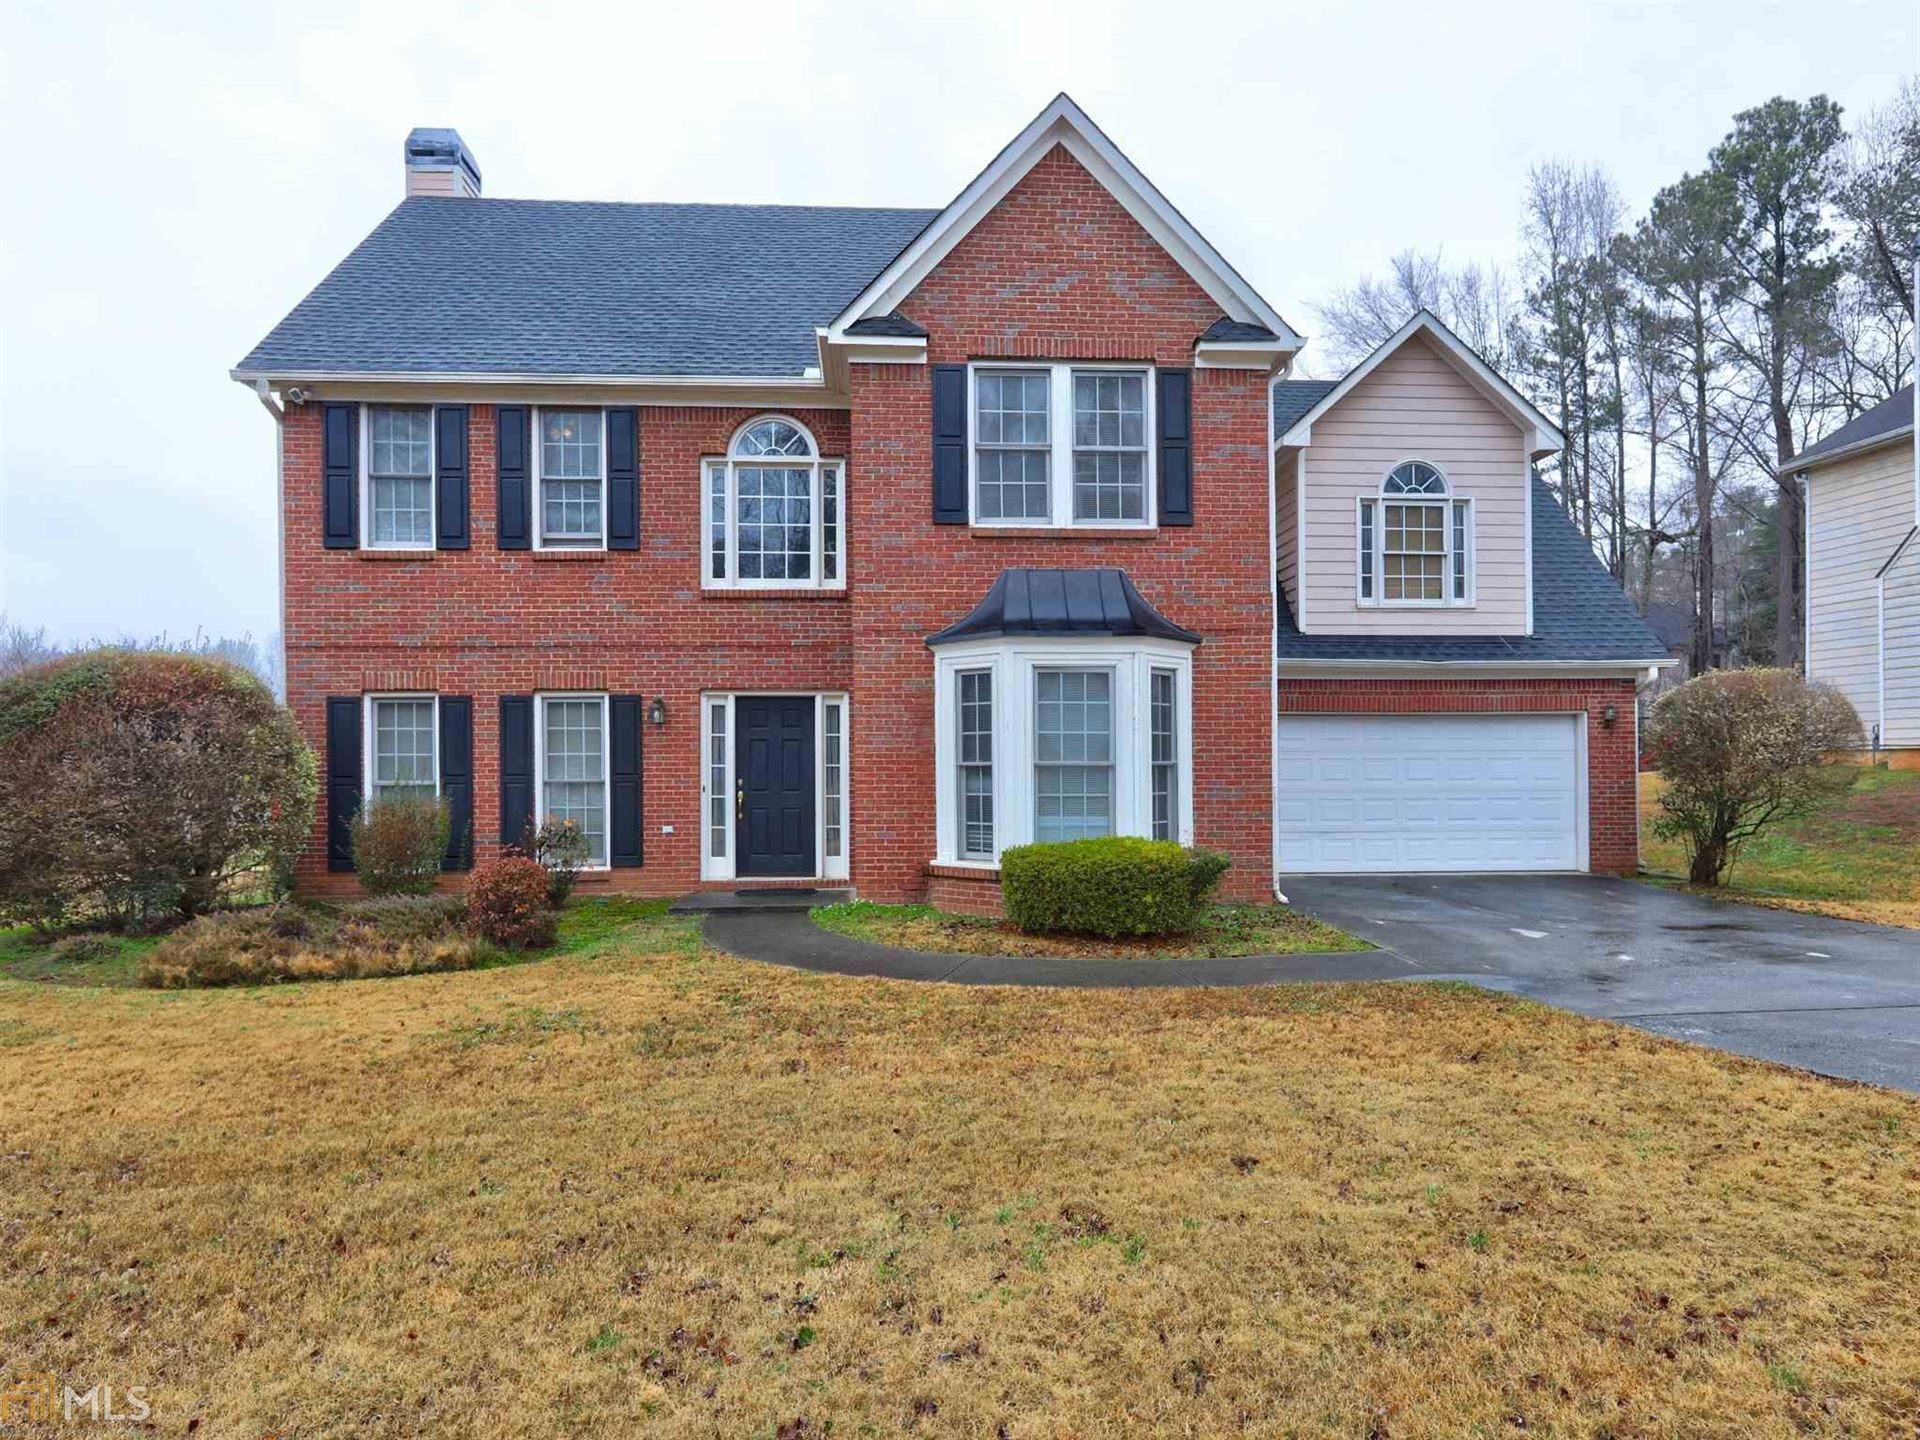 7458 Crescent Bnd, Stone Mountain, GA 30087 - #: 8911404